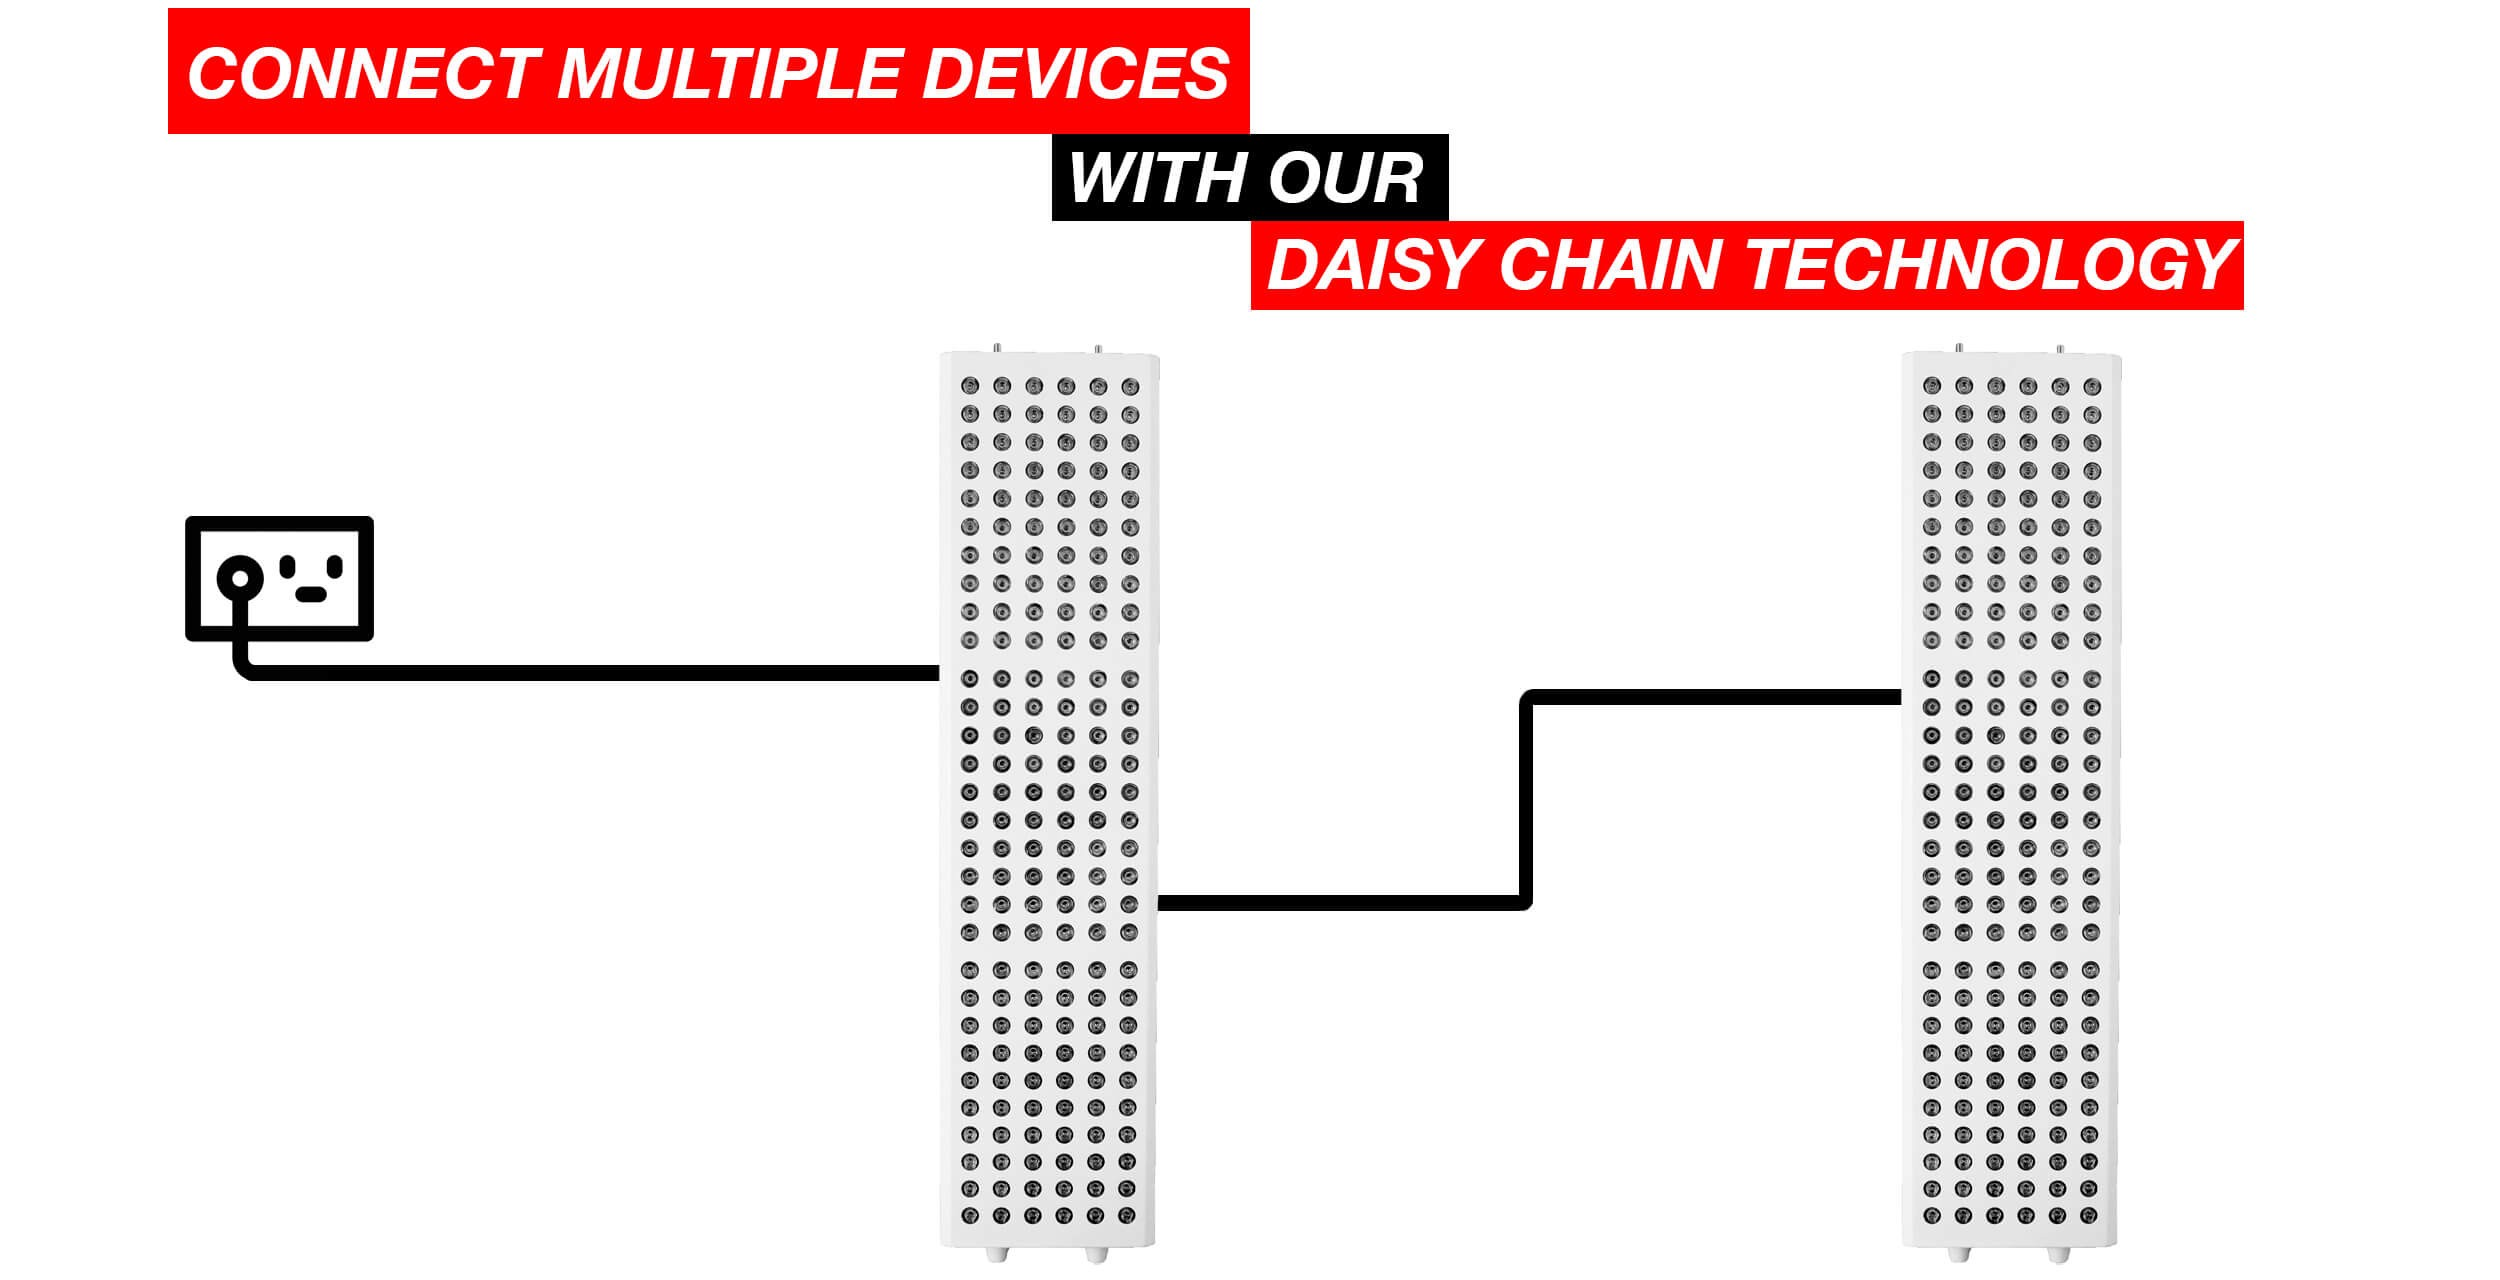 Connect multiple devices